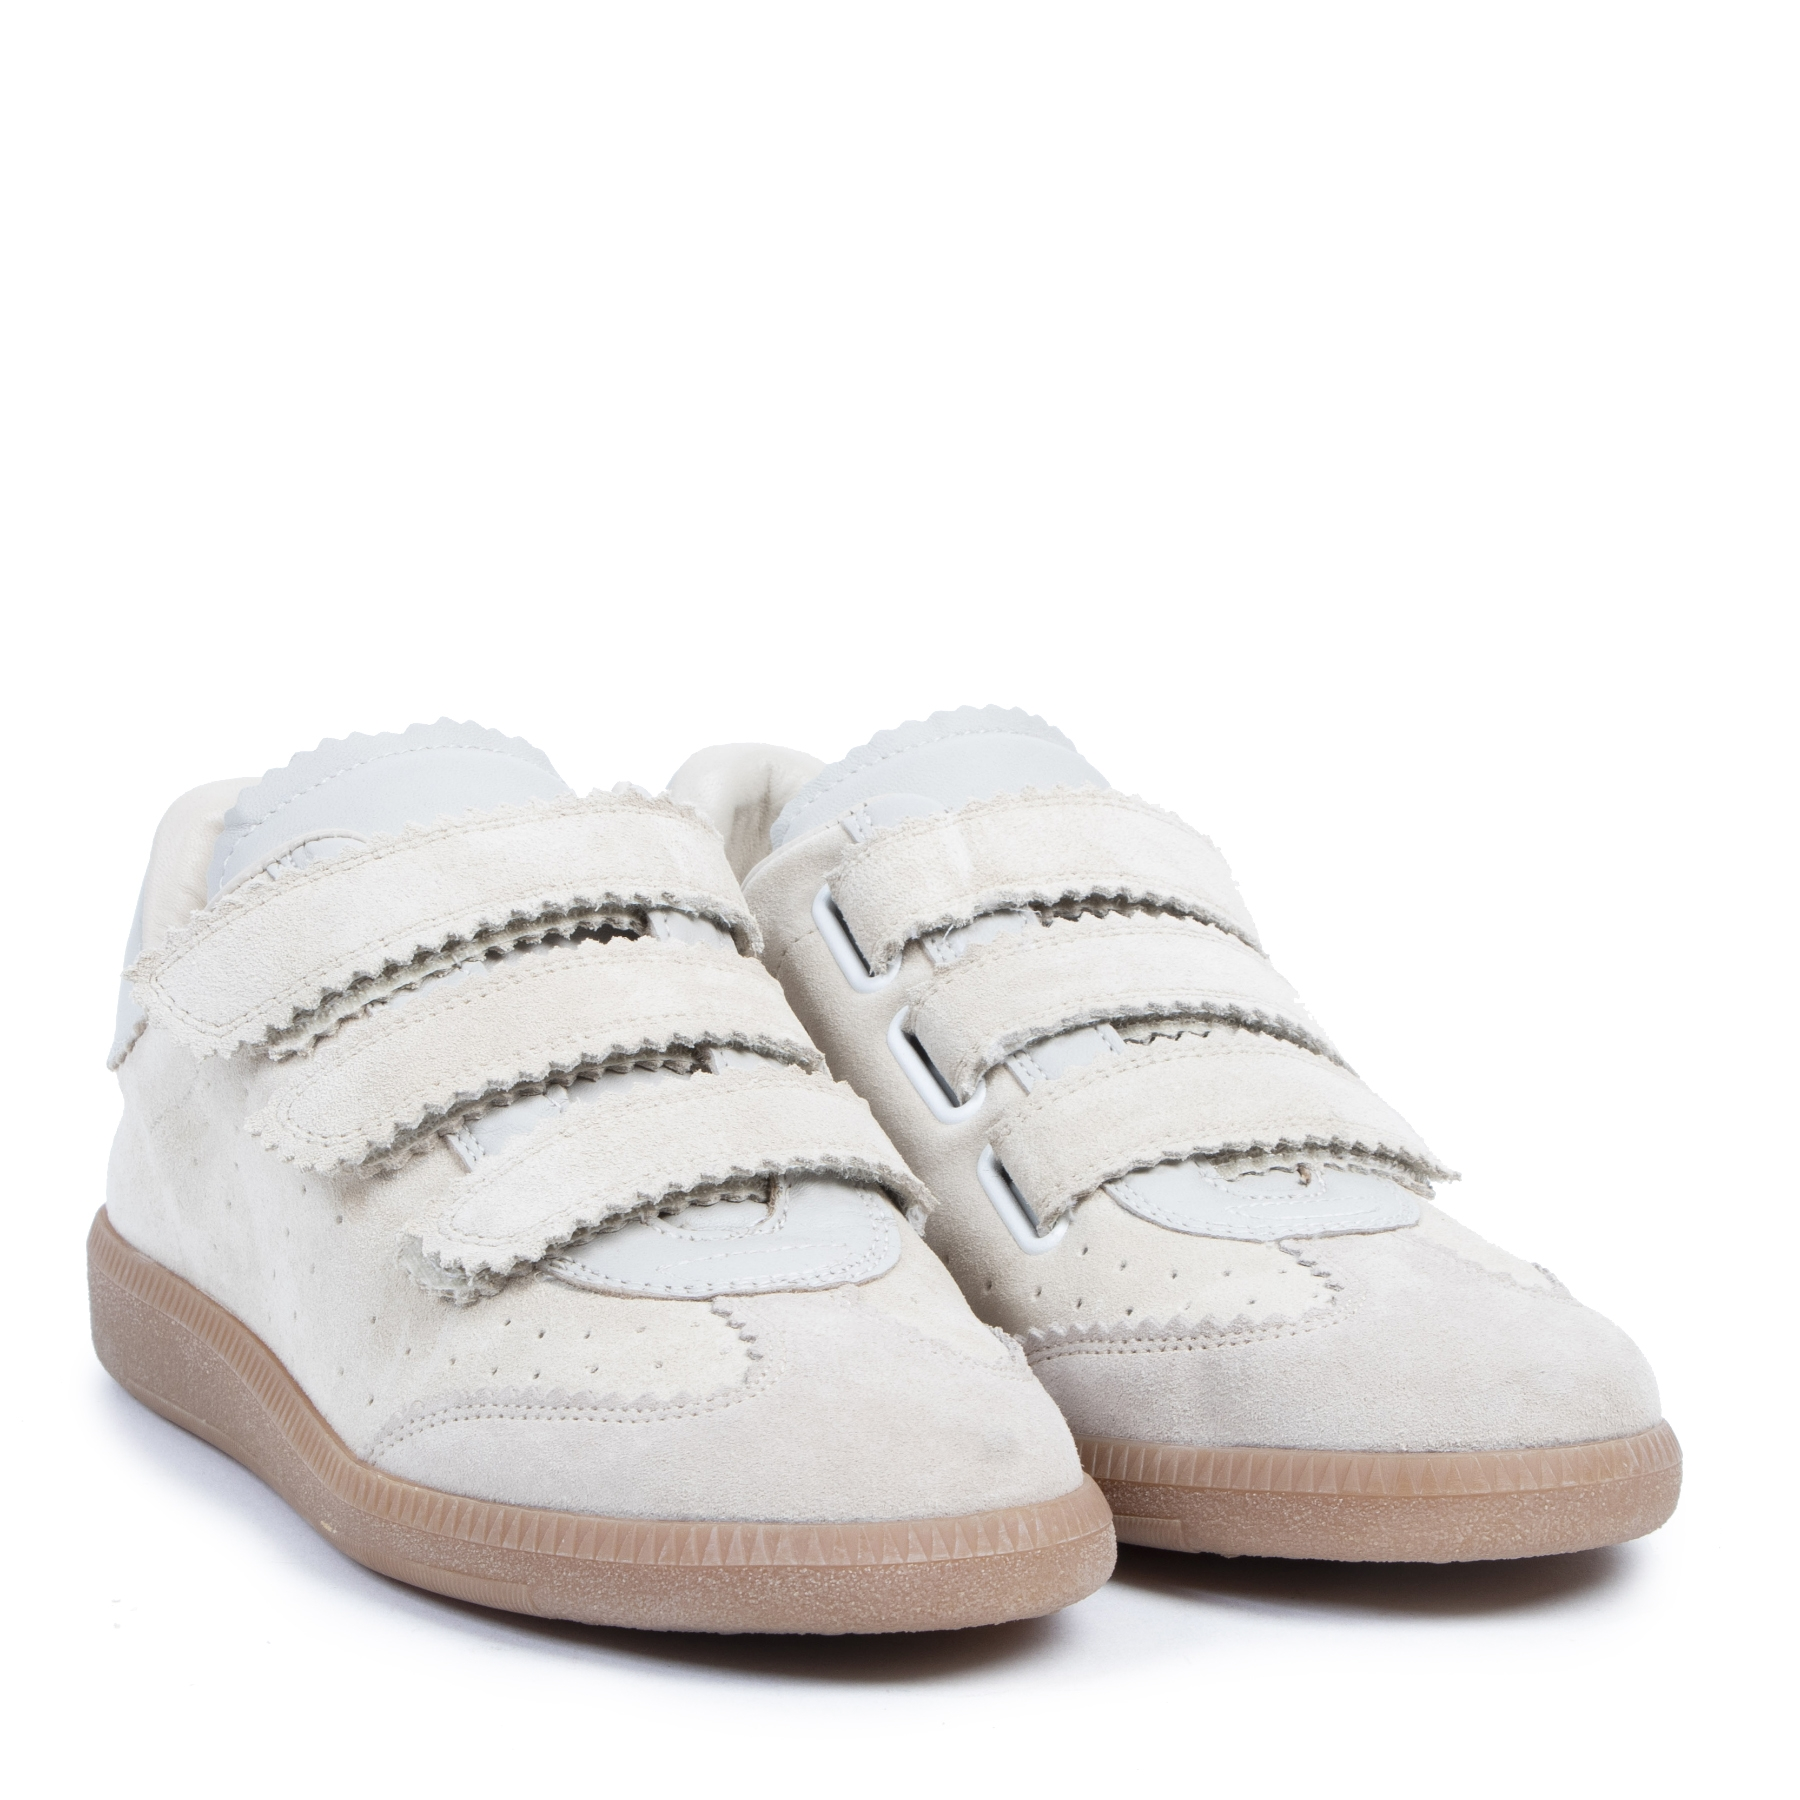 Authentieke tweedehands vintage Isabel Marant Etoile Beth Leather Sneakers - Size 39 koop online webshop LabelLOV